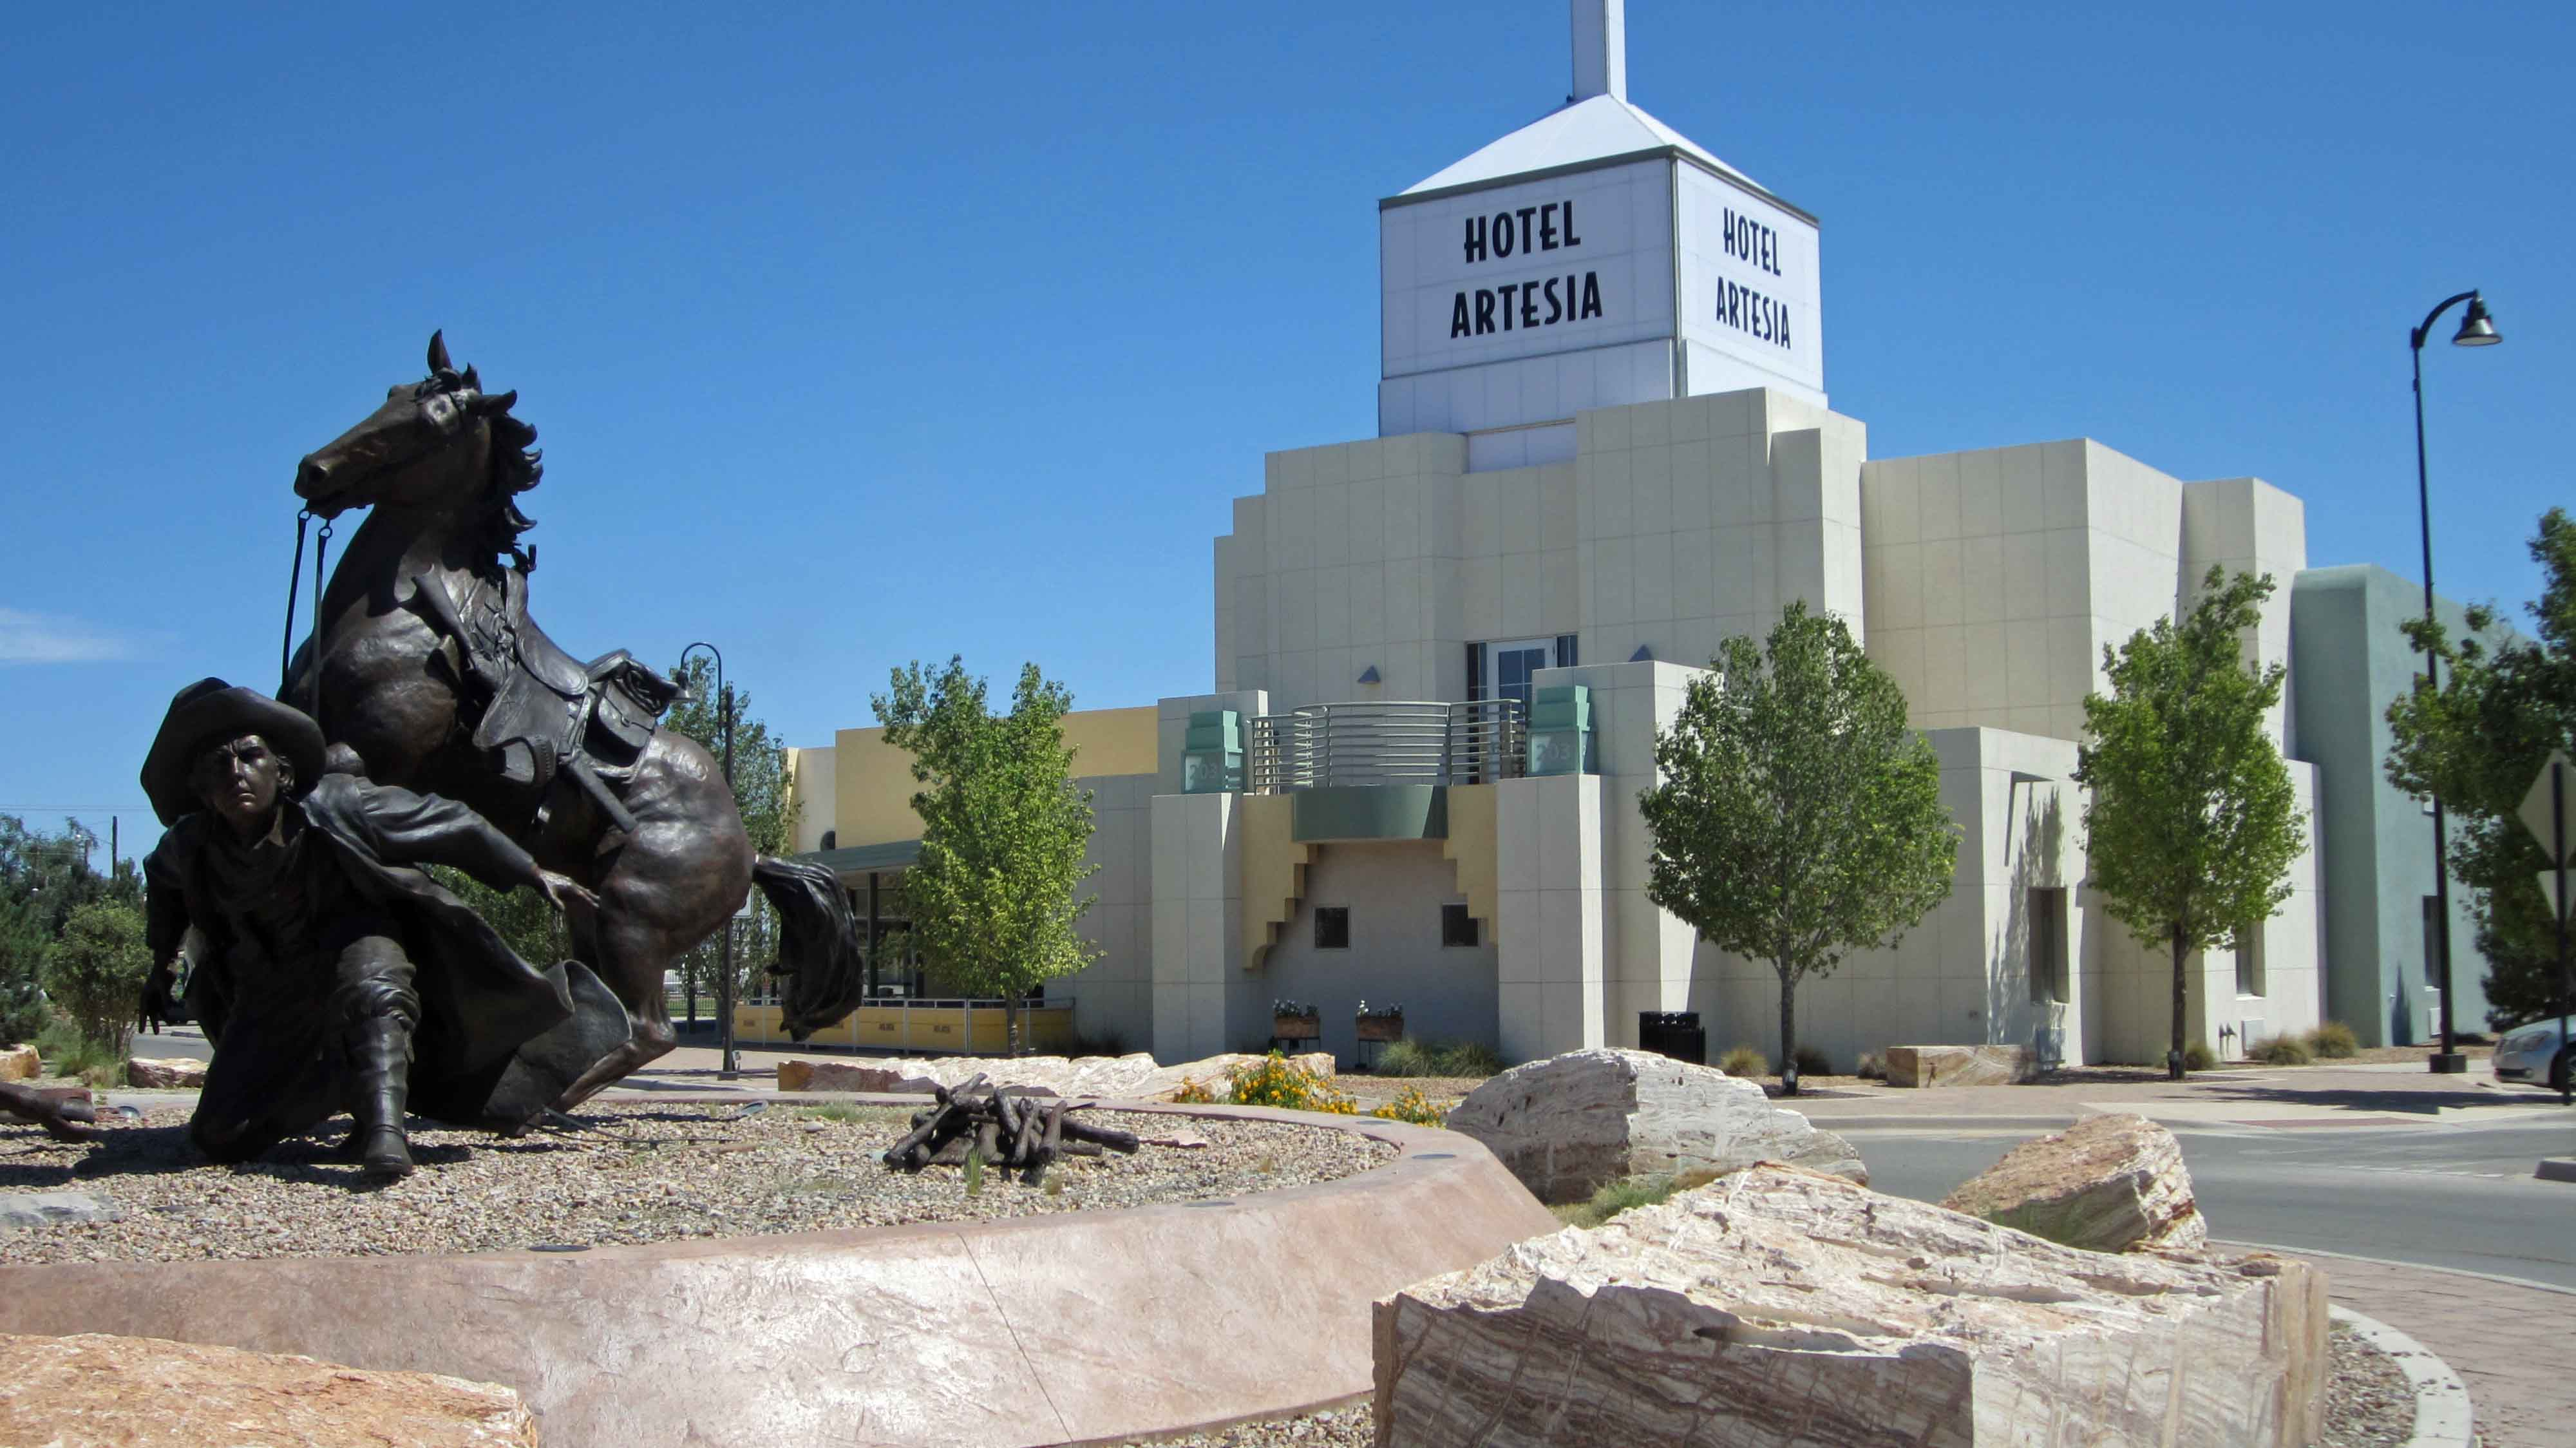 Hotel Artesia Off The Road In New Mexico Listing Details